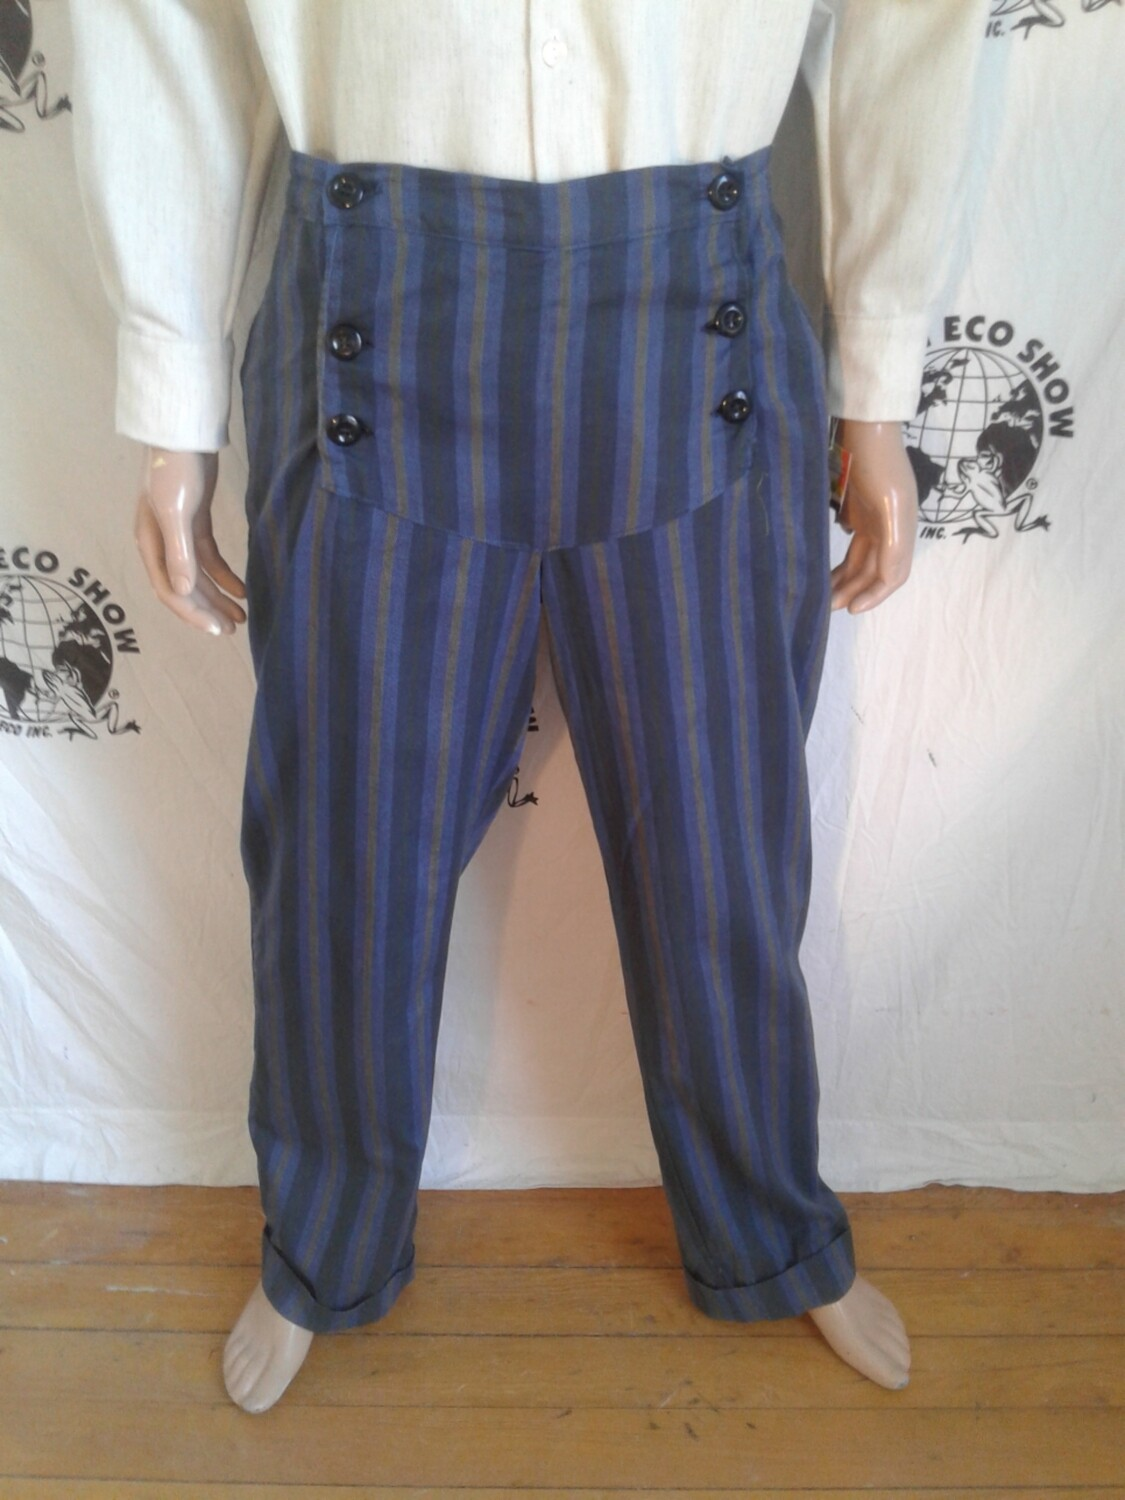 Mens double fky Steampunk striped pants 38 X 32